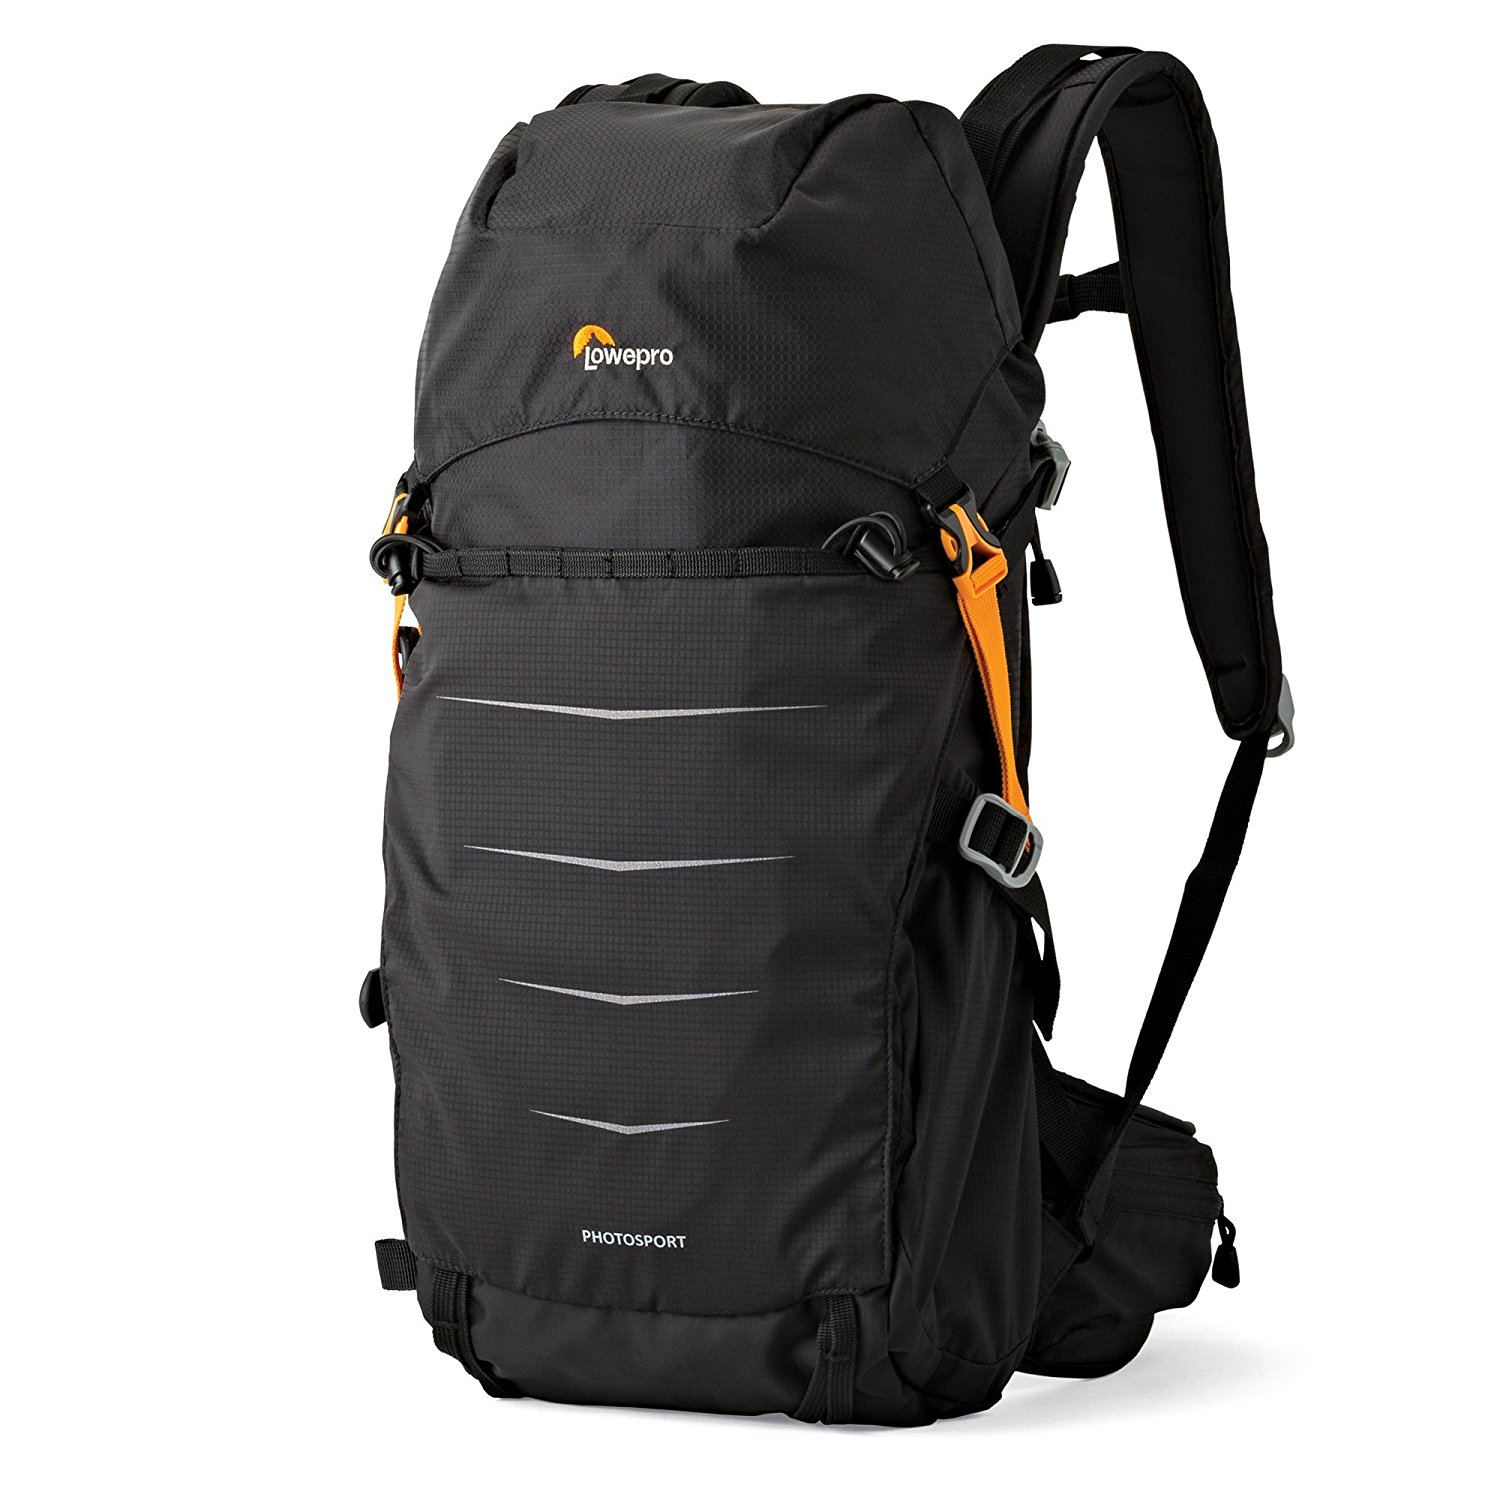 *Lowepro LP36888-PWW Photo Sport BP 200 AW II Tasche schwarz*